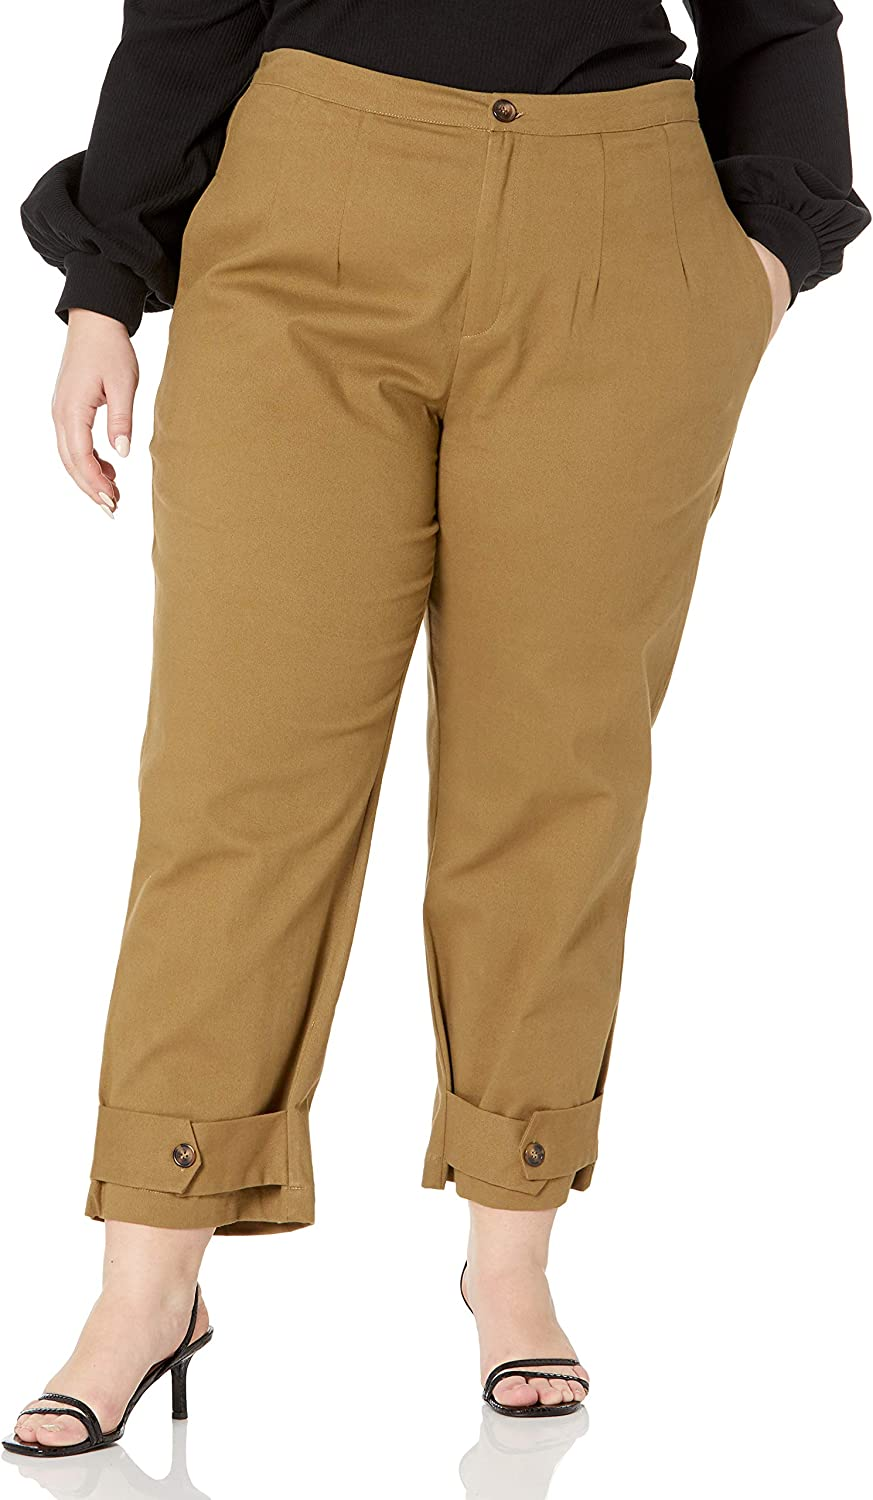 KENDALL + KYLIE Women's Belted Ankle Twill Pants